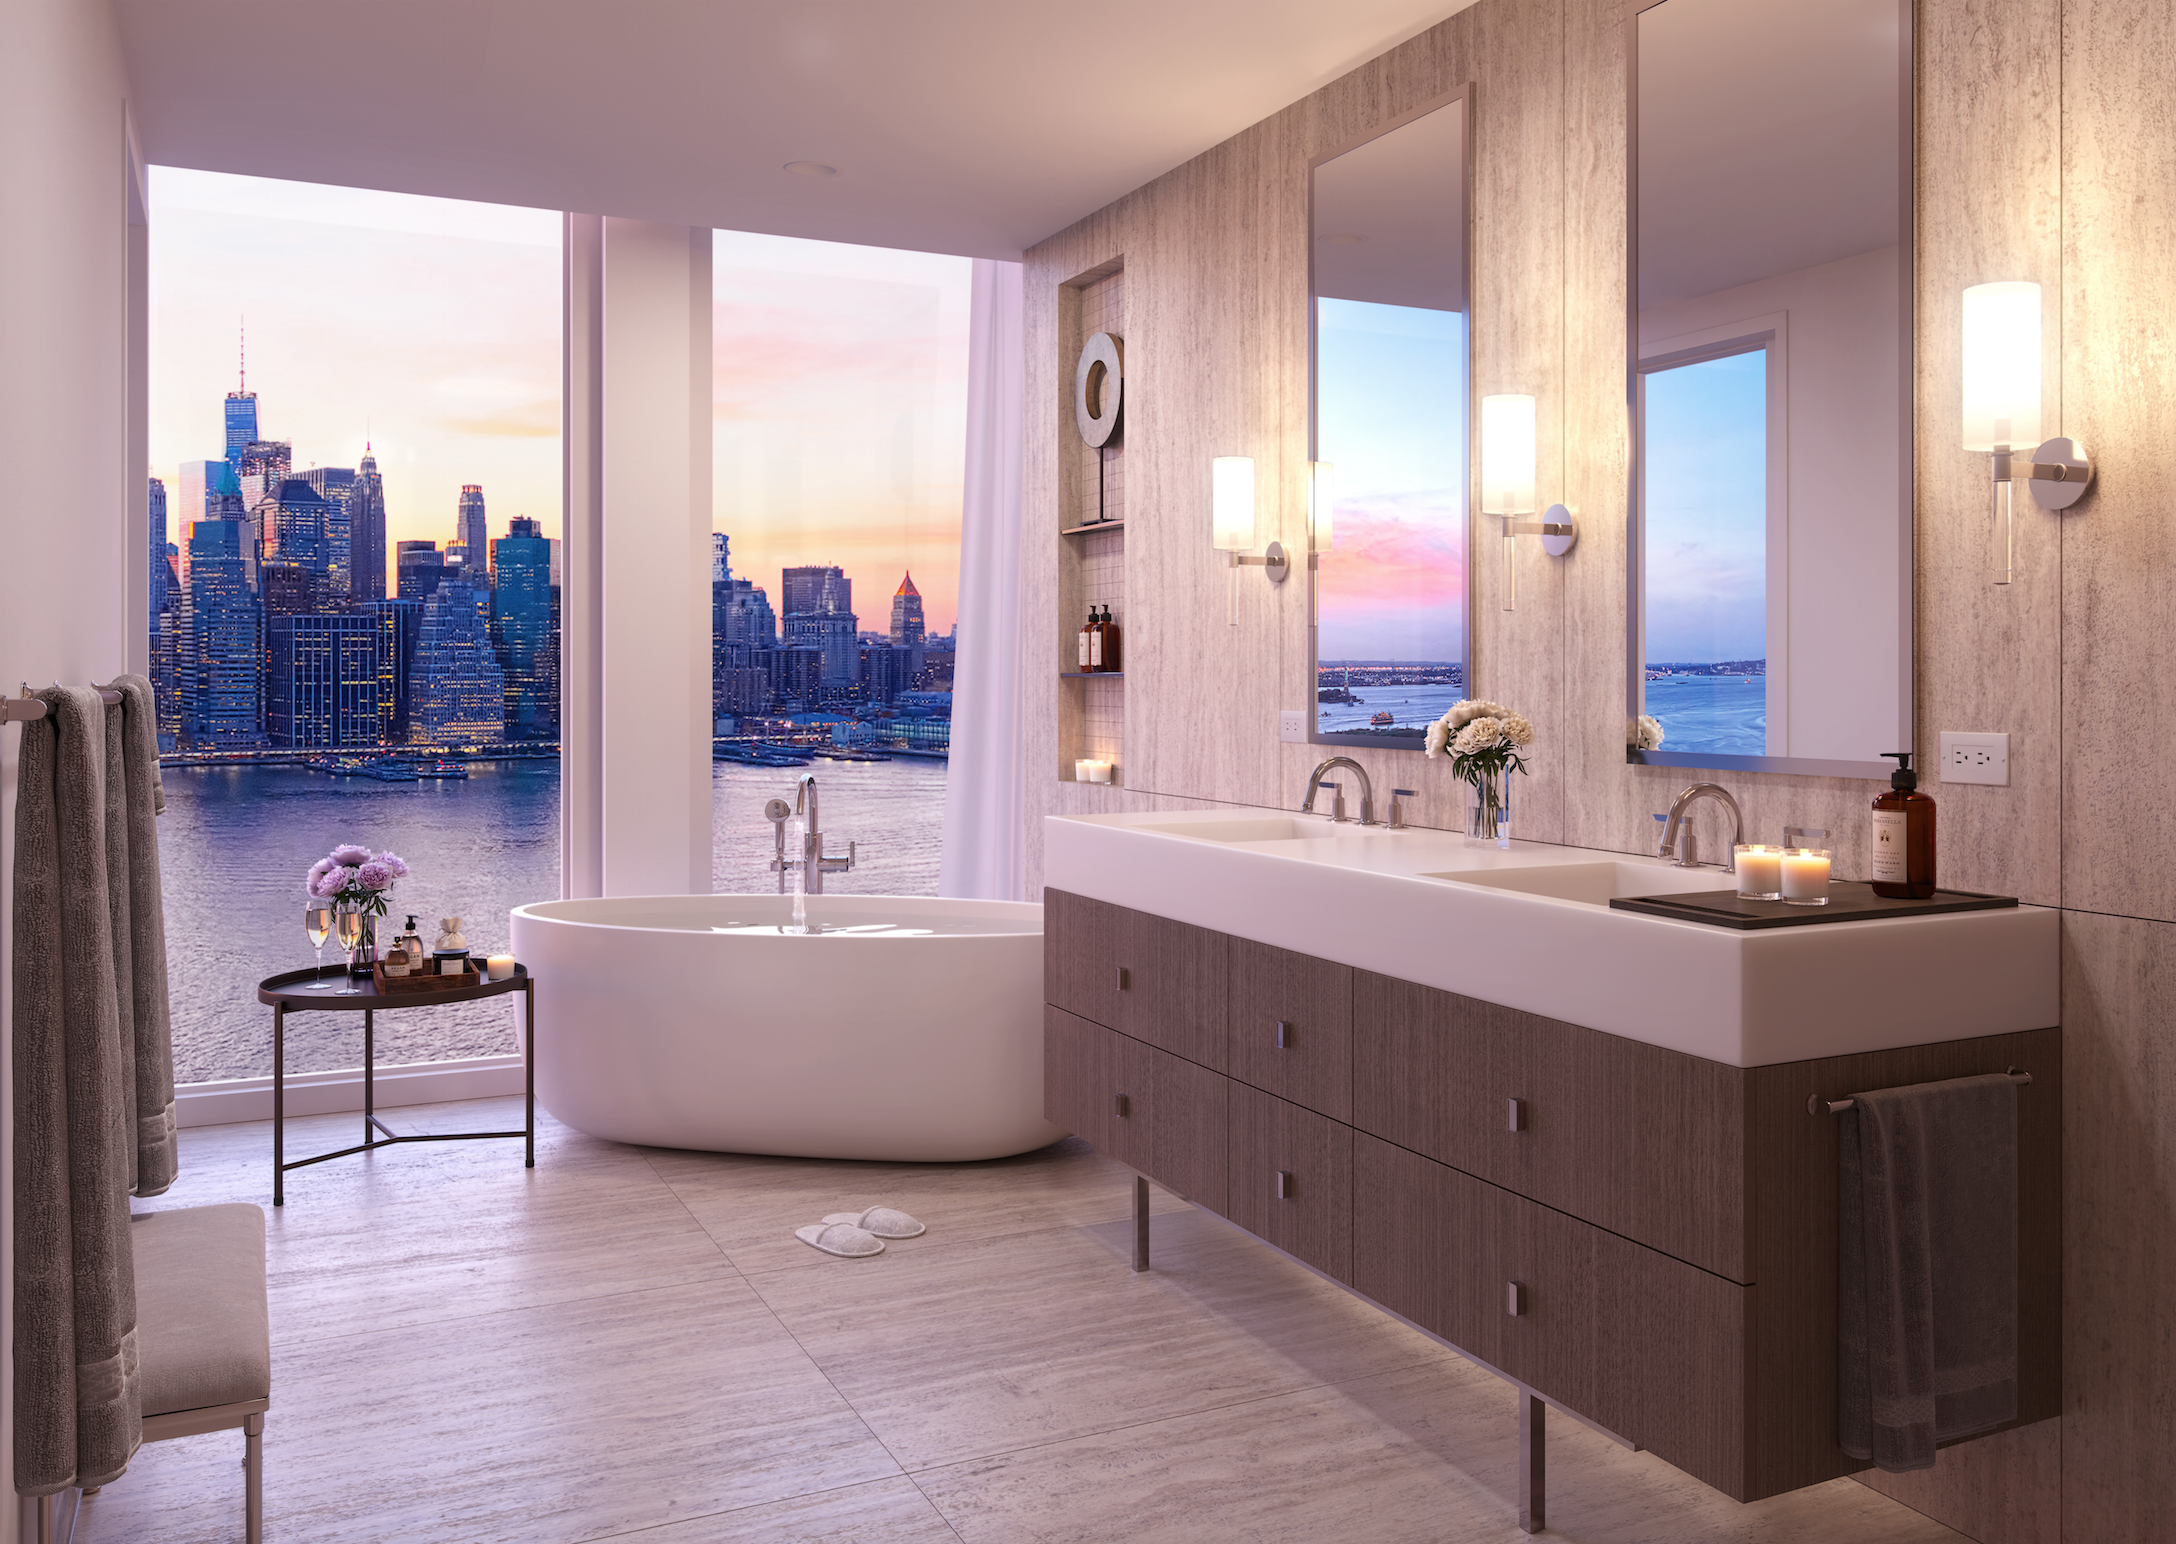 Marmol Radziner Tabbed As Interior Designer For Brooklyn Height's New Pier 6 Condo, Quay Tower